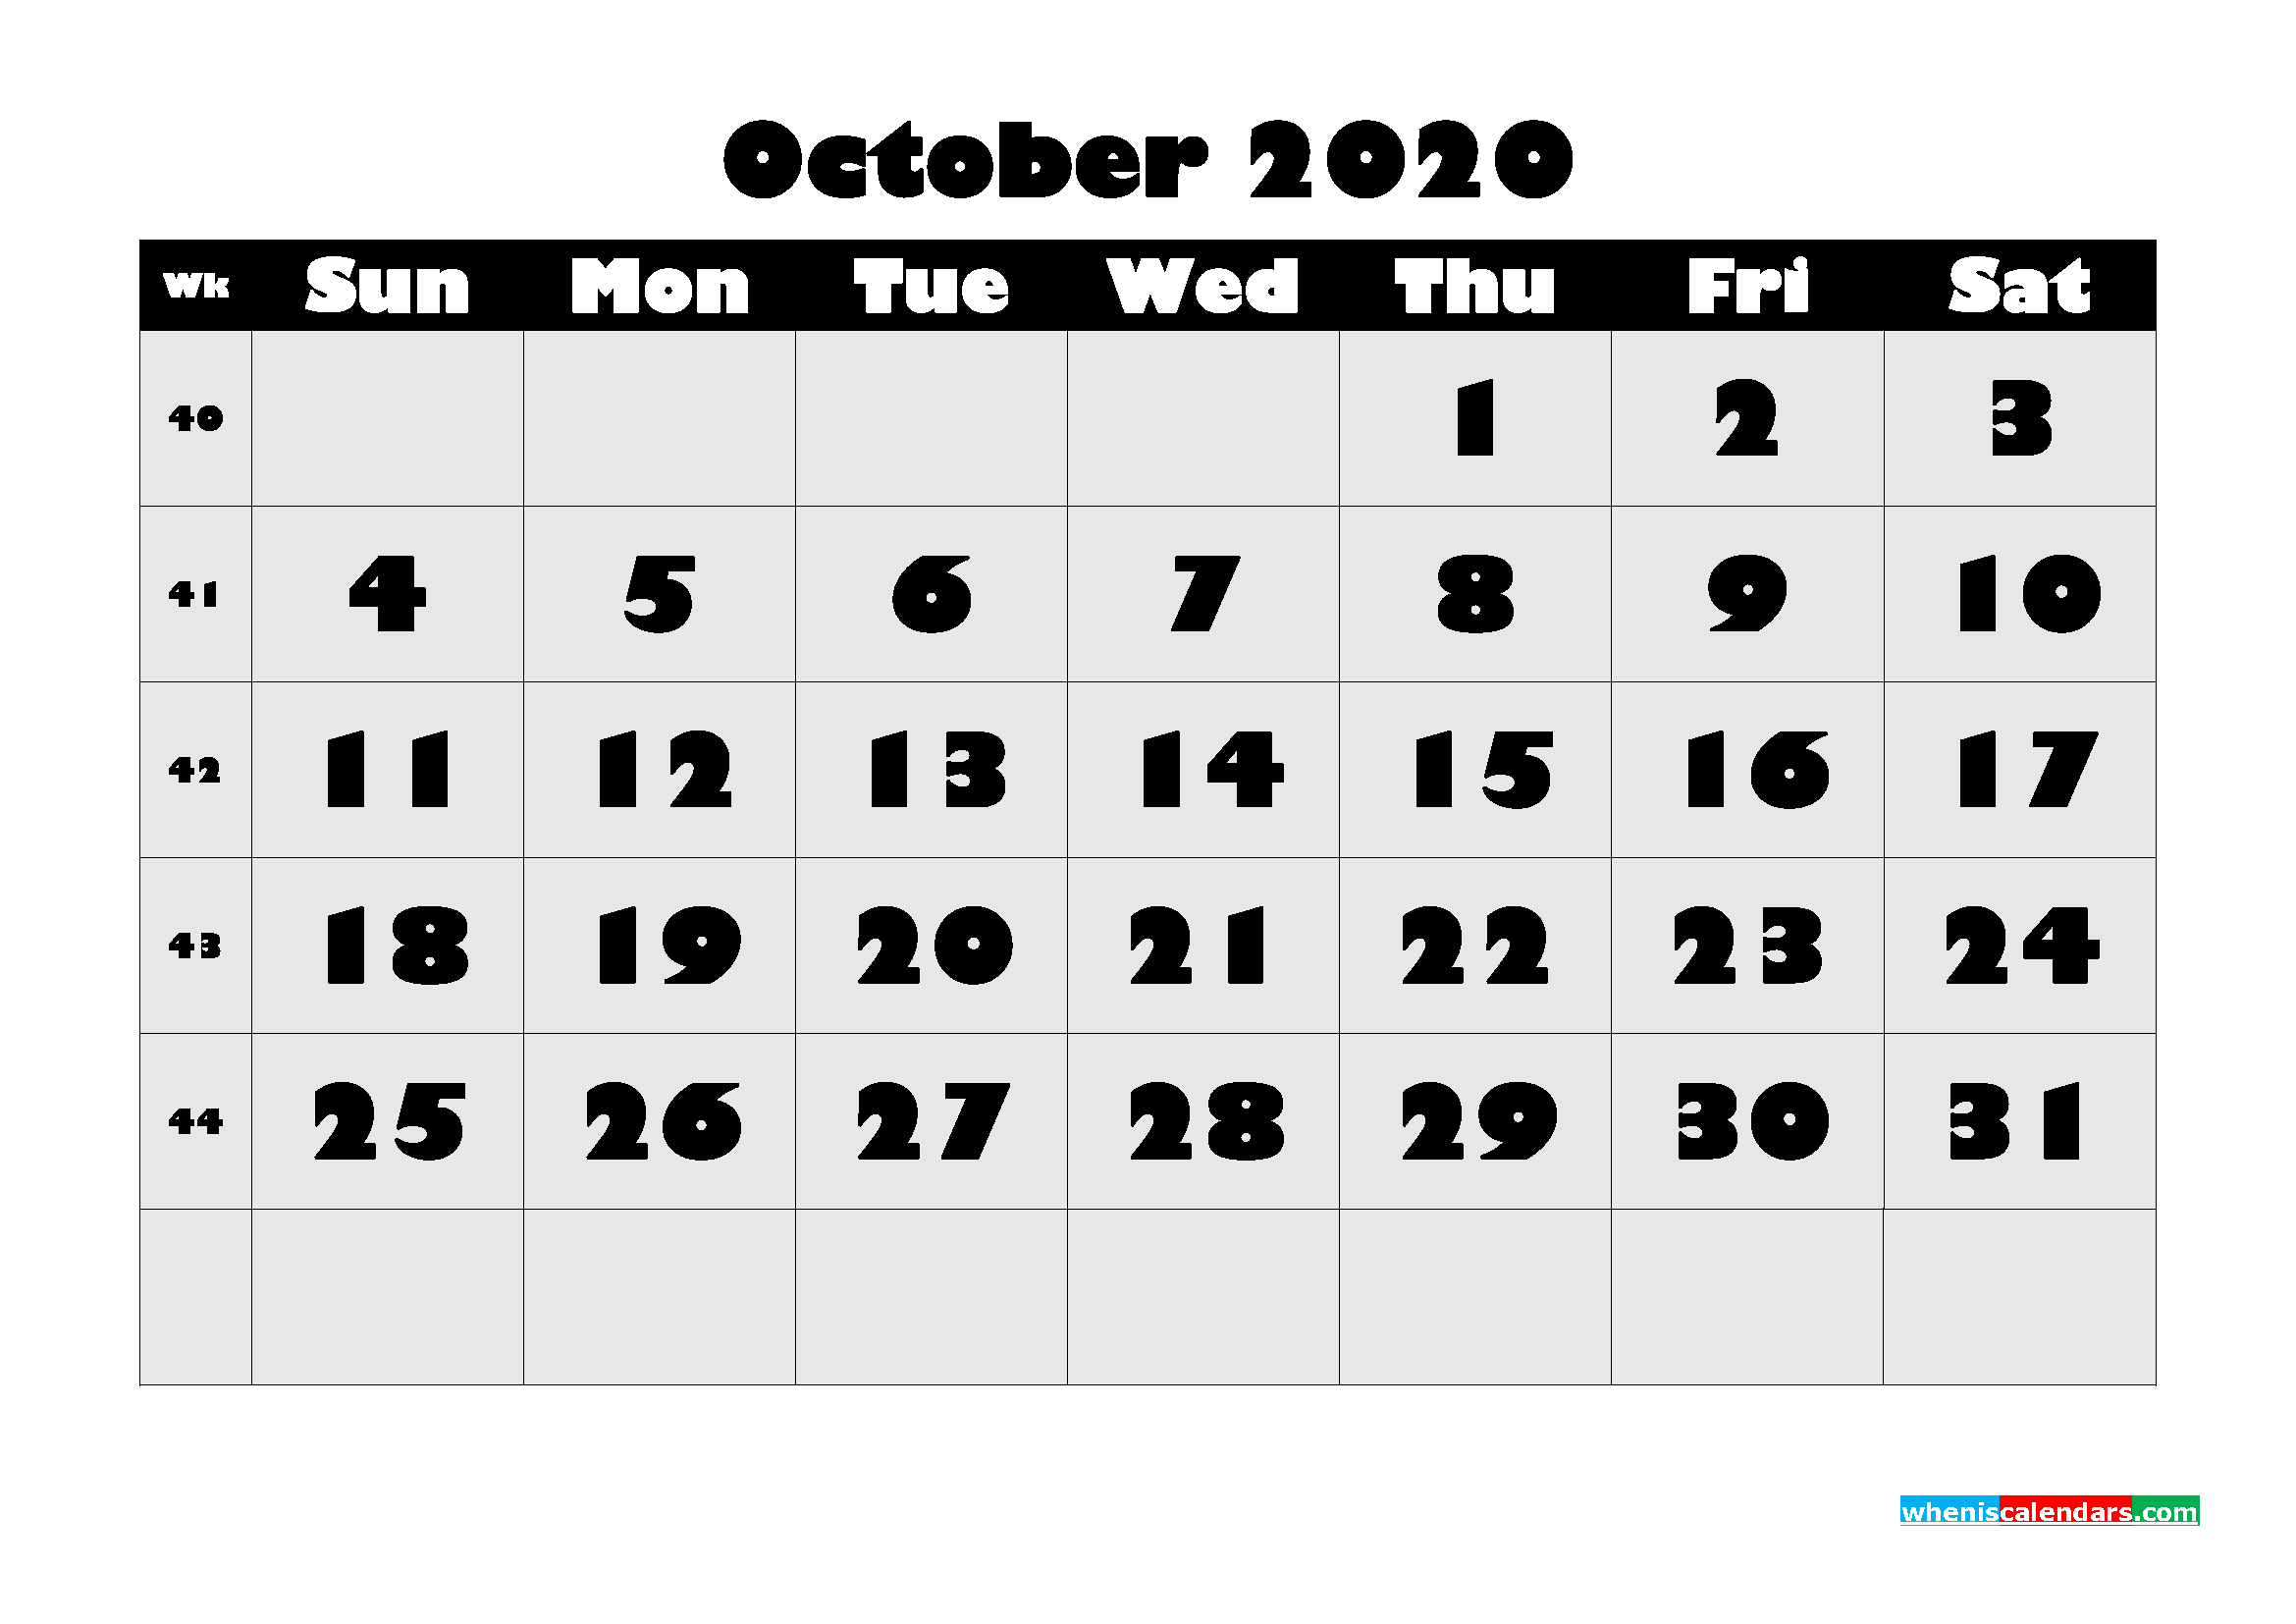 Free Printable October 2020 Calendar - No.m20b610